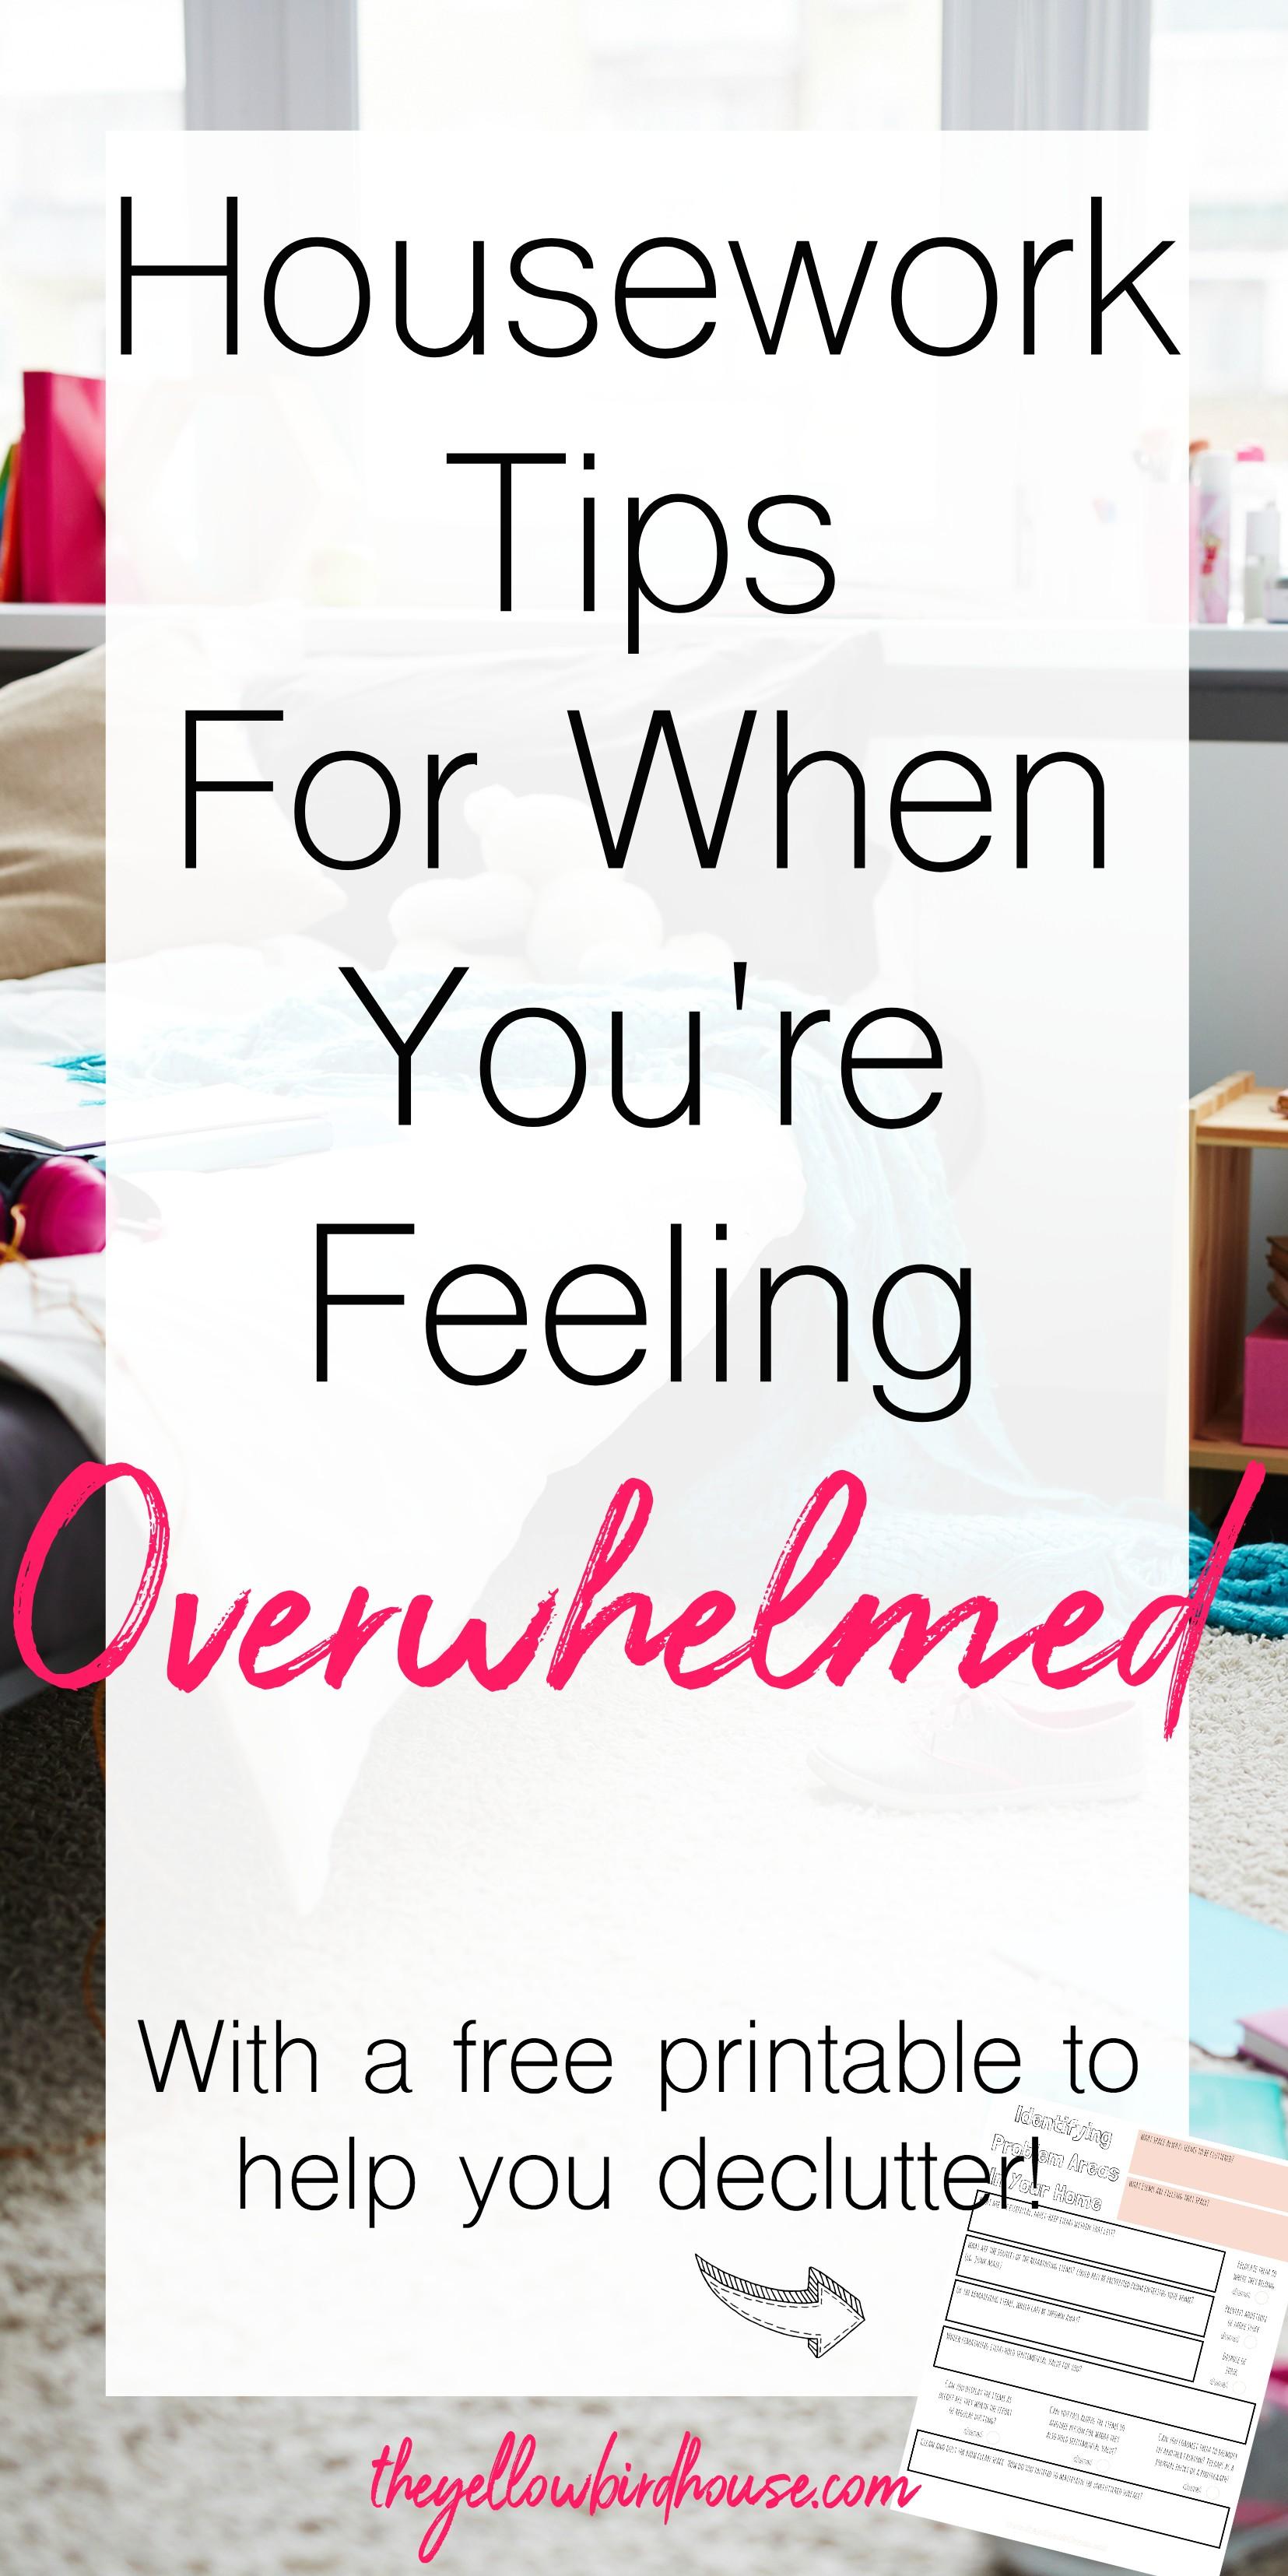 Follow these simple housework tips when you're feeling totally overwhelmed by the workload. Free decluttering printable to help simplify the housework. Avoid feeling overwhelmed by housework by implementing these simple tips!